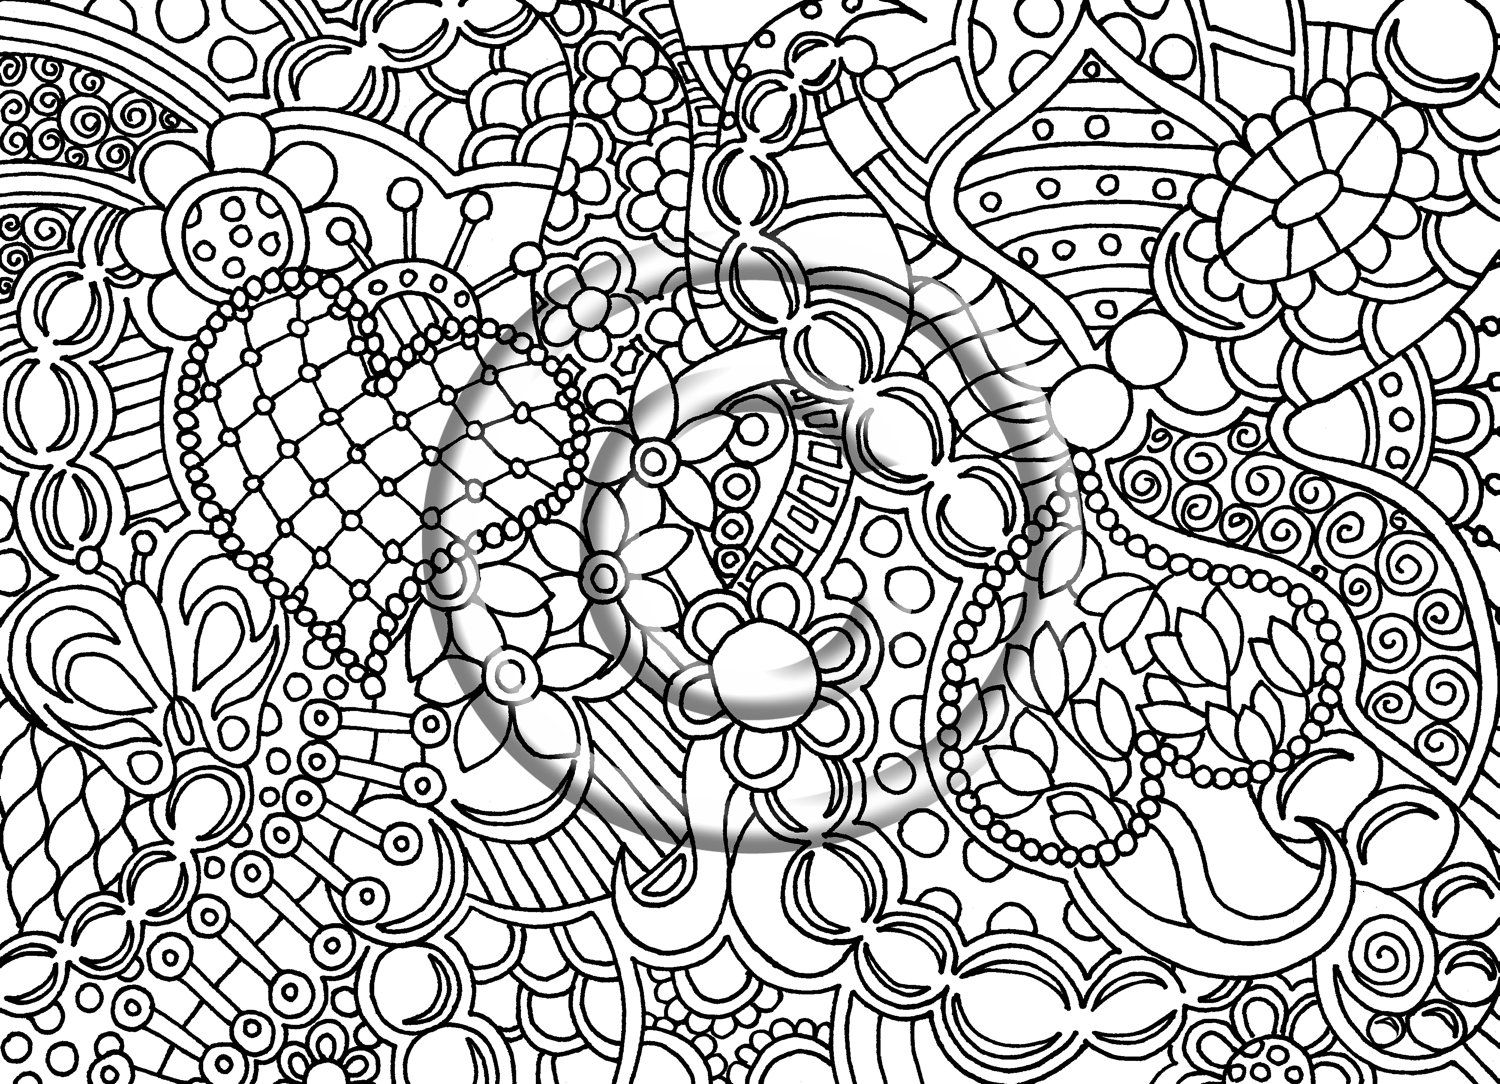 Uncategorized Trippy Color Pages trippy coloring pages naruto wallpapers design wallpapers